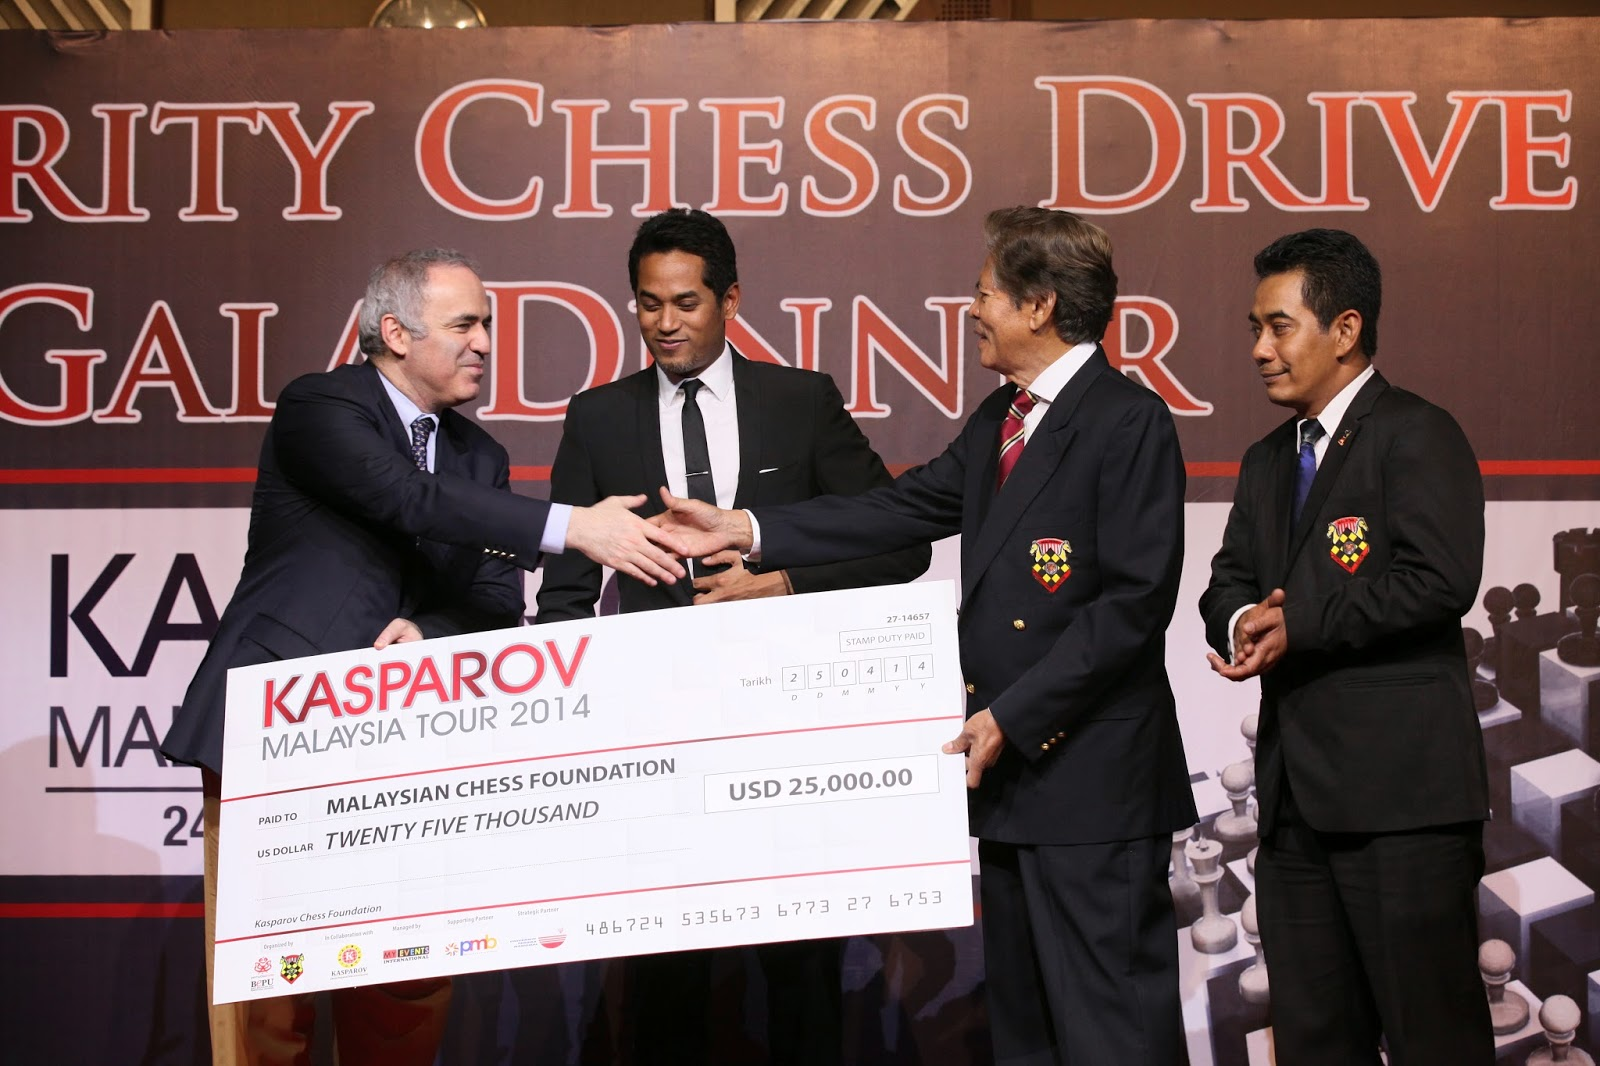 Garry handing over a cheque to Tan Dri Ramli Ngah Talib to help start Kasparov Chess Foundations Asia-Pacific's support for Chess in Education